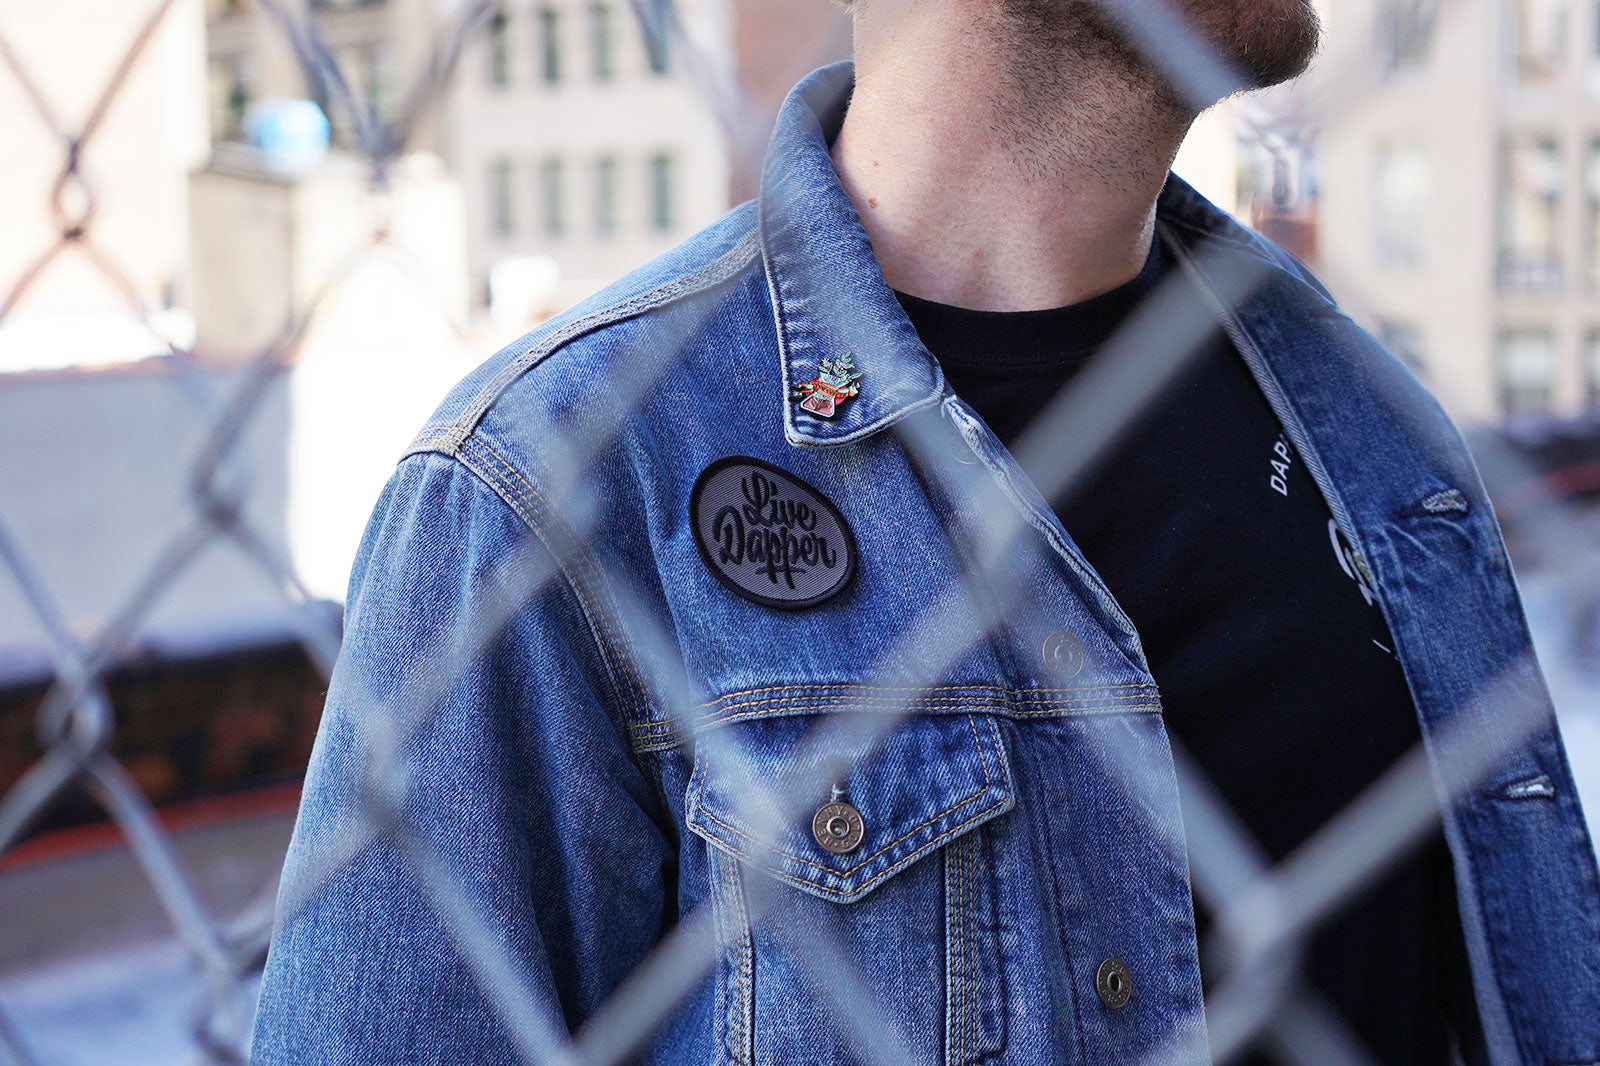 Benny Gold denim jacket with Dapper notes patch